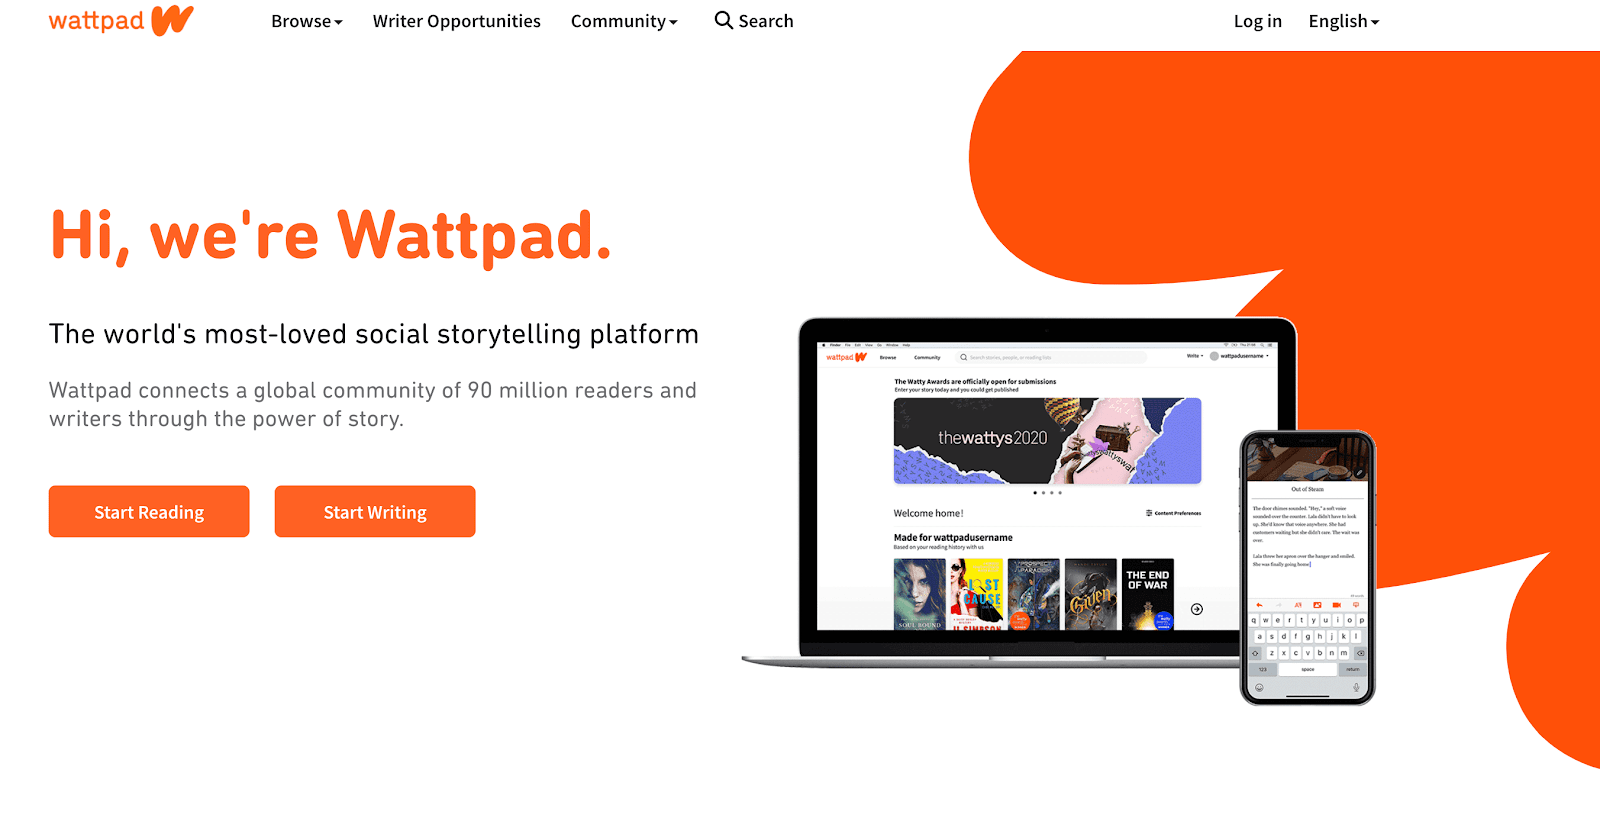 Screenshot of Wattpad's home screen